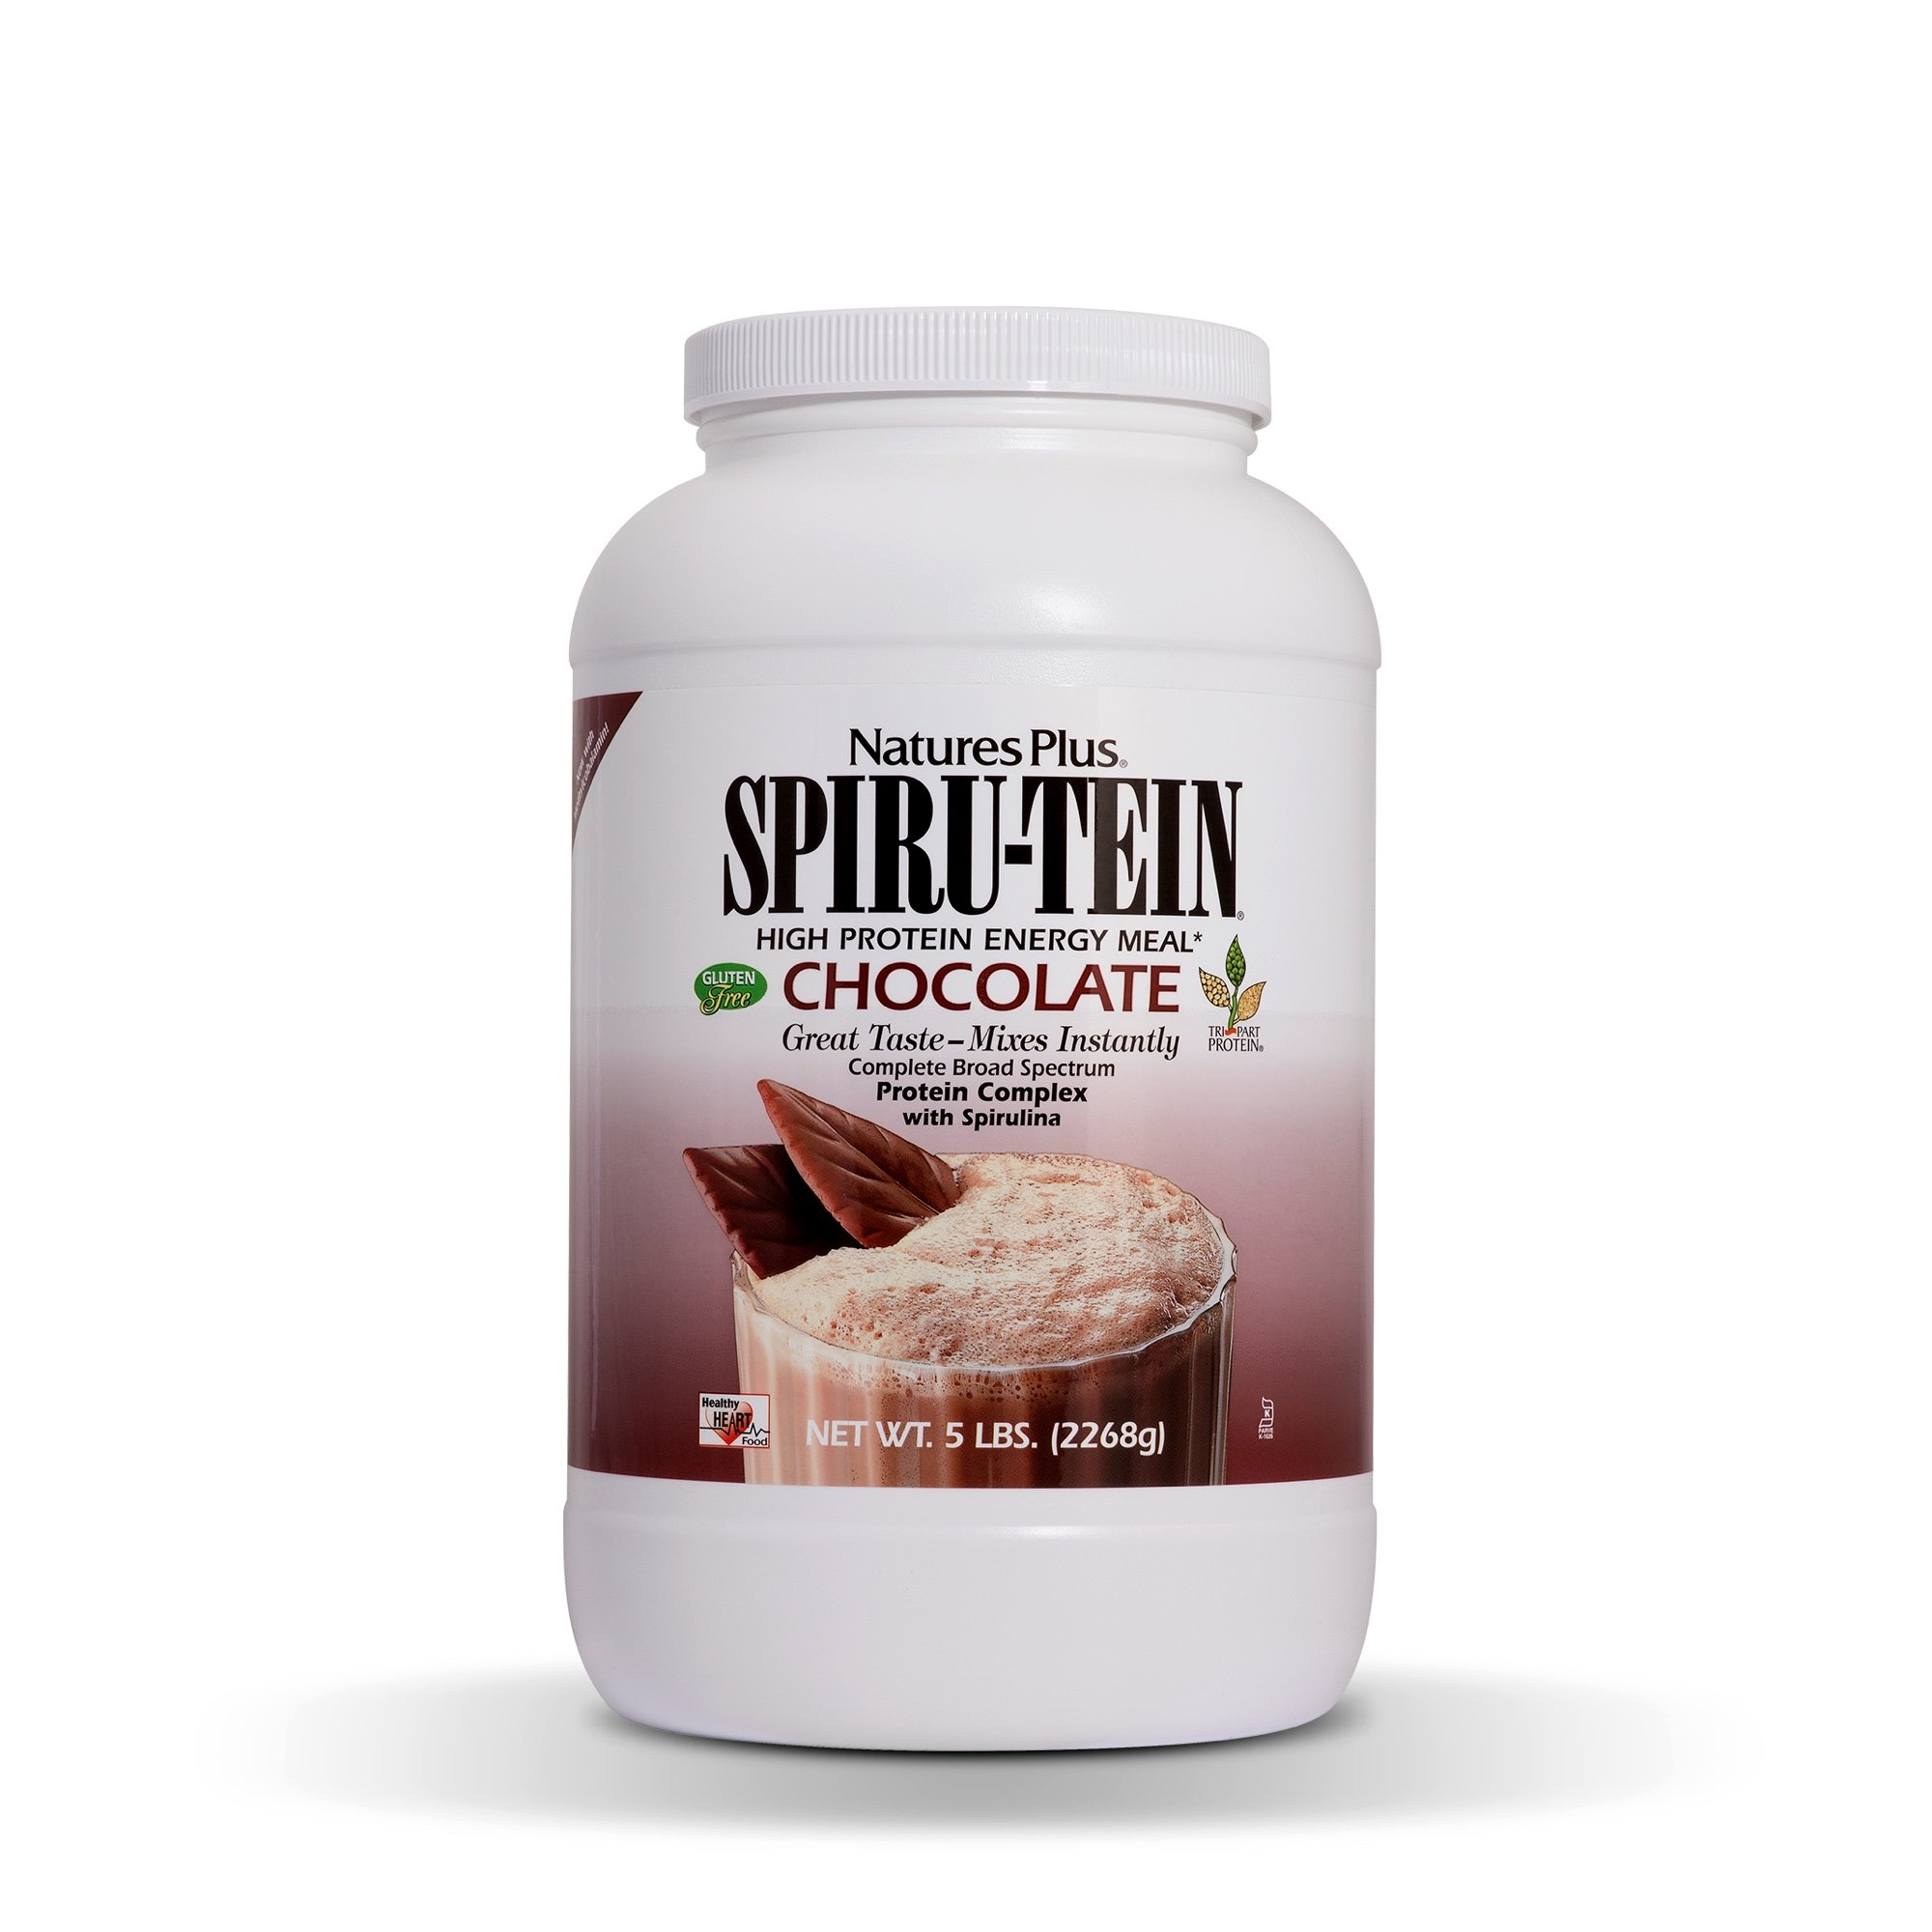 NaturesPlus SPIRU-TEIN Shake - Chocolate - 5 lbs, Spirulina Protein Powder - Plant Based Meal Replacement, Vitamins & Minerals For Energy - Vegetarian, Gluten-Free - 81 Servings by Nature's Plus (Image #1)